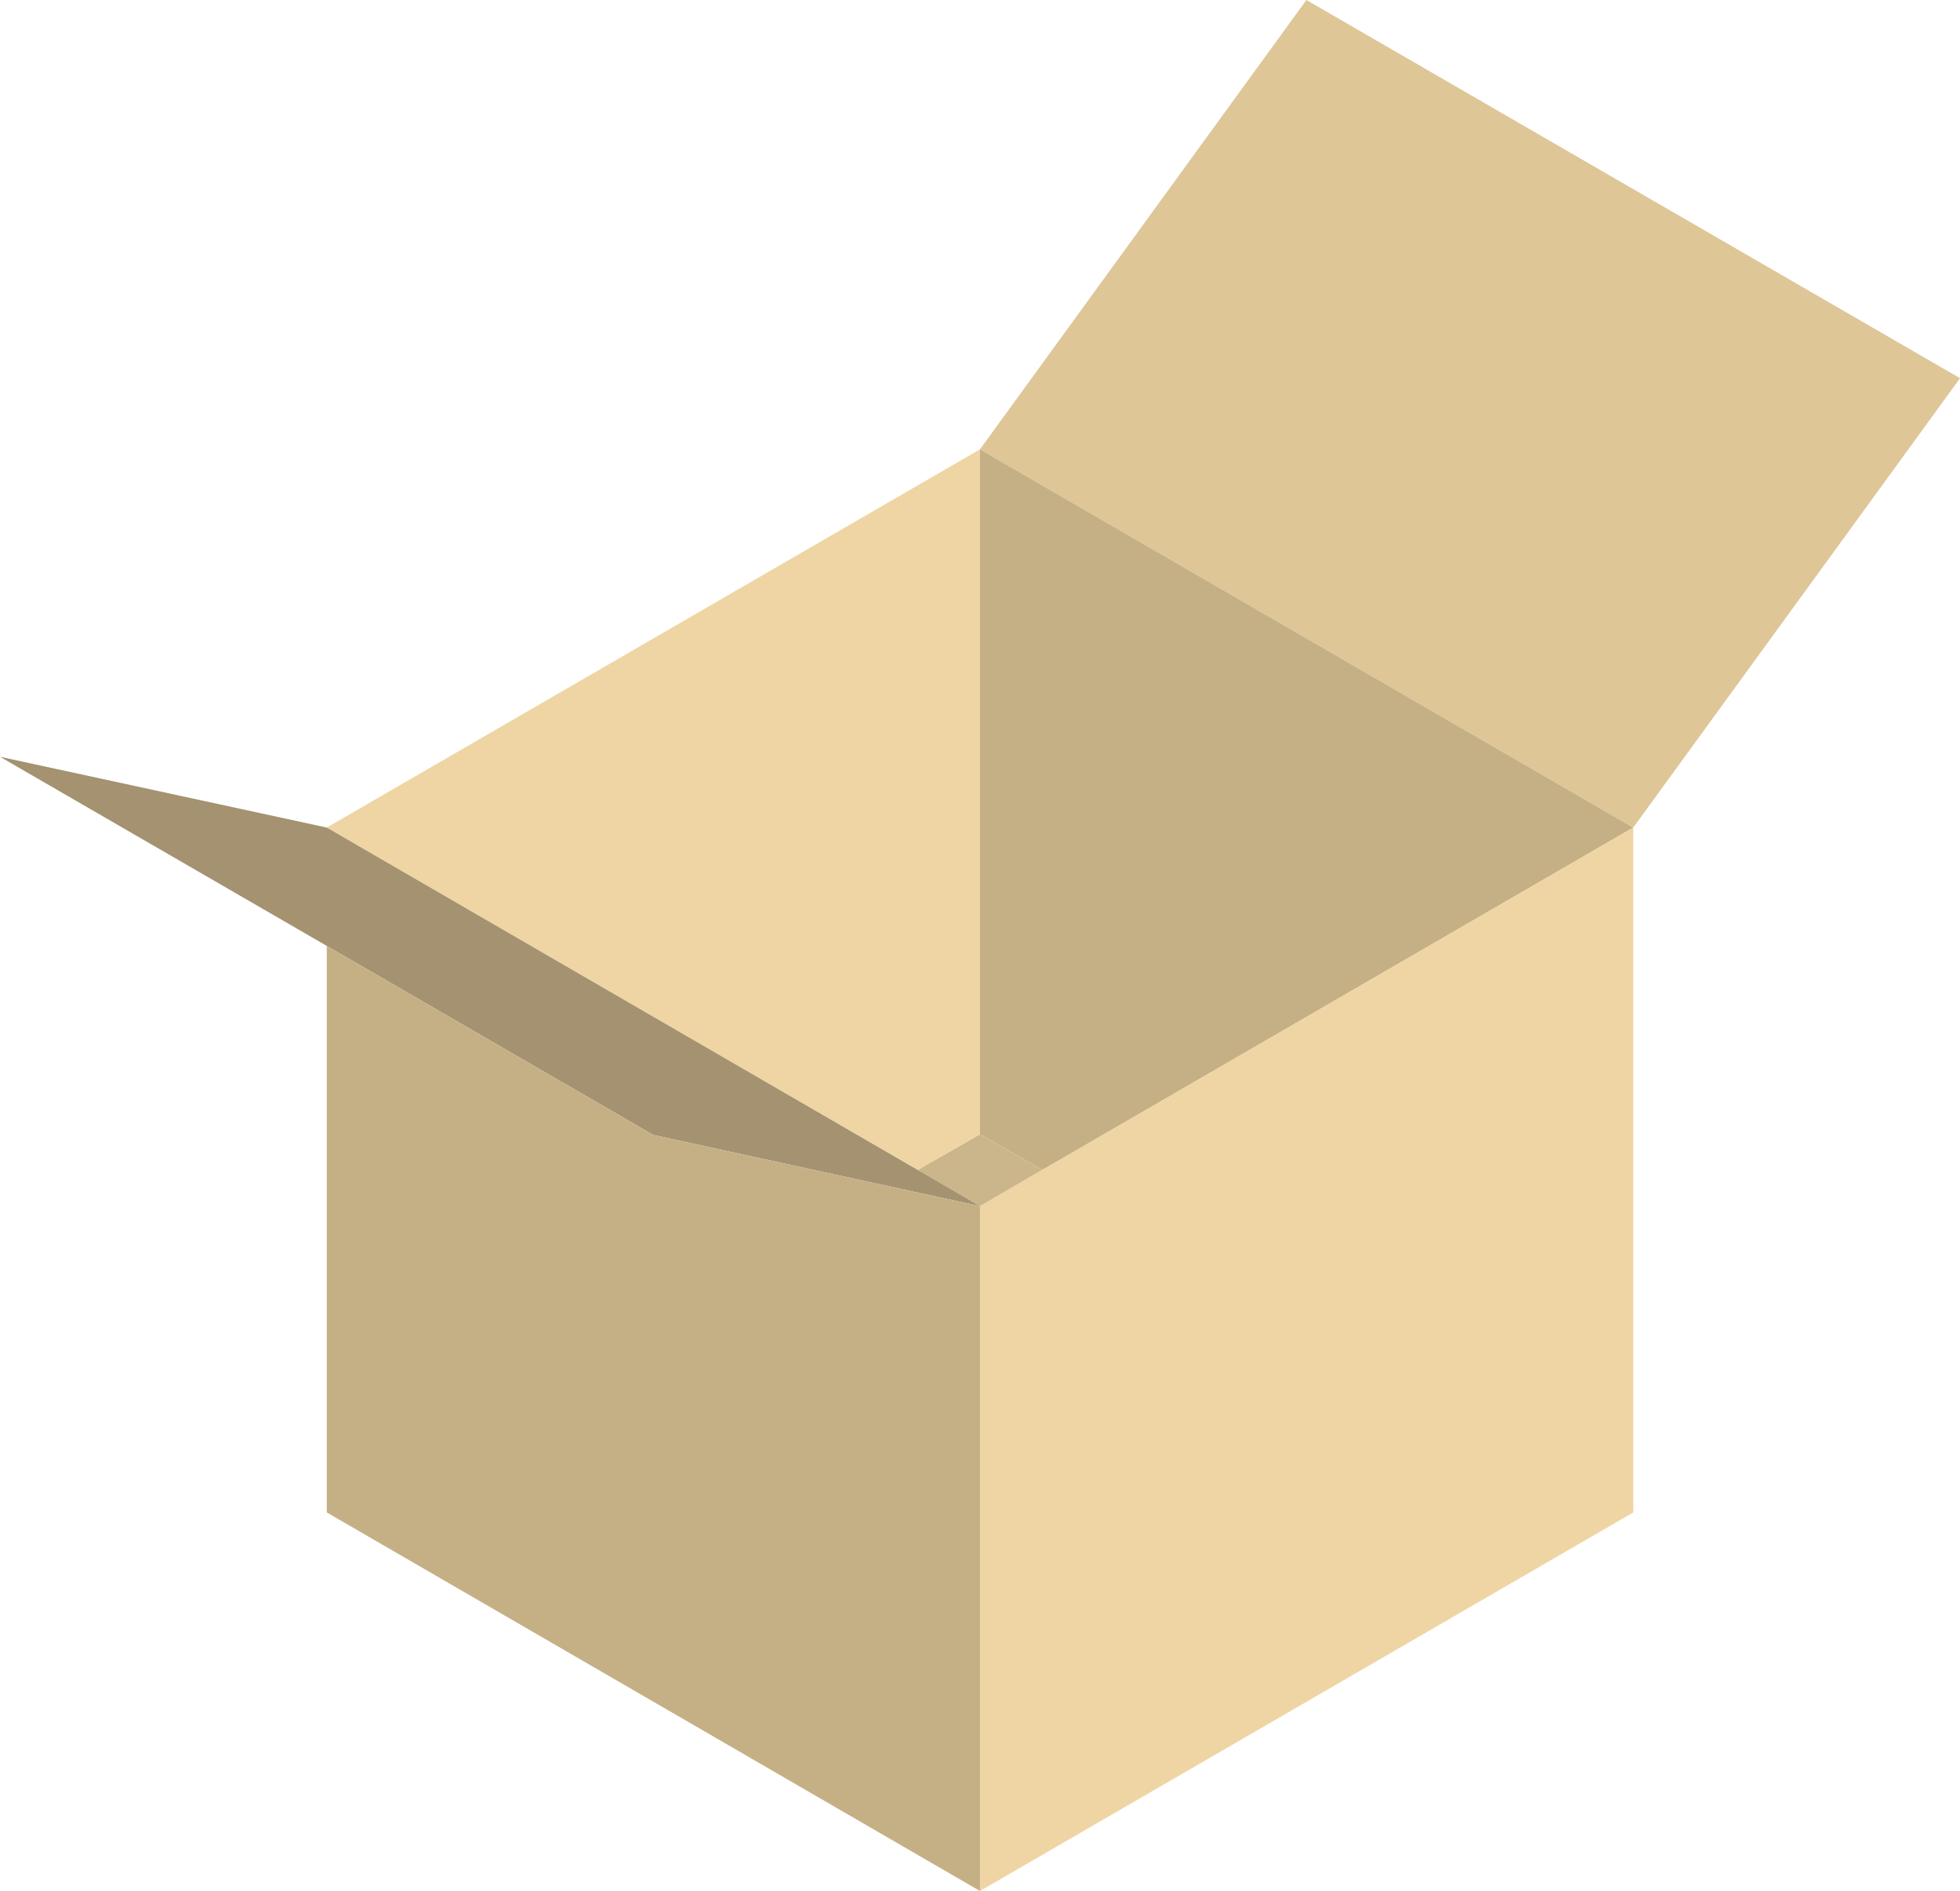 Open box by Kenney